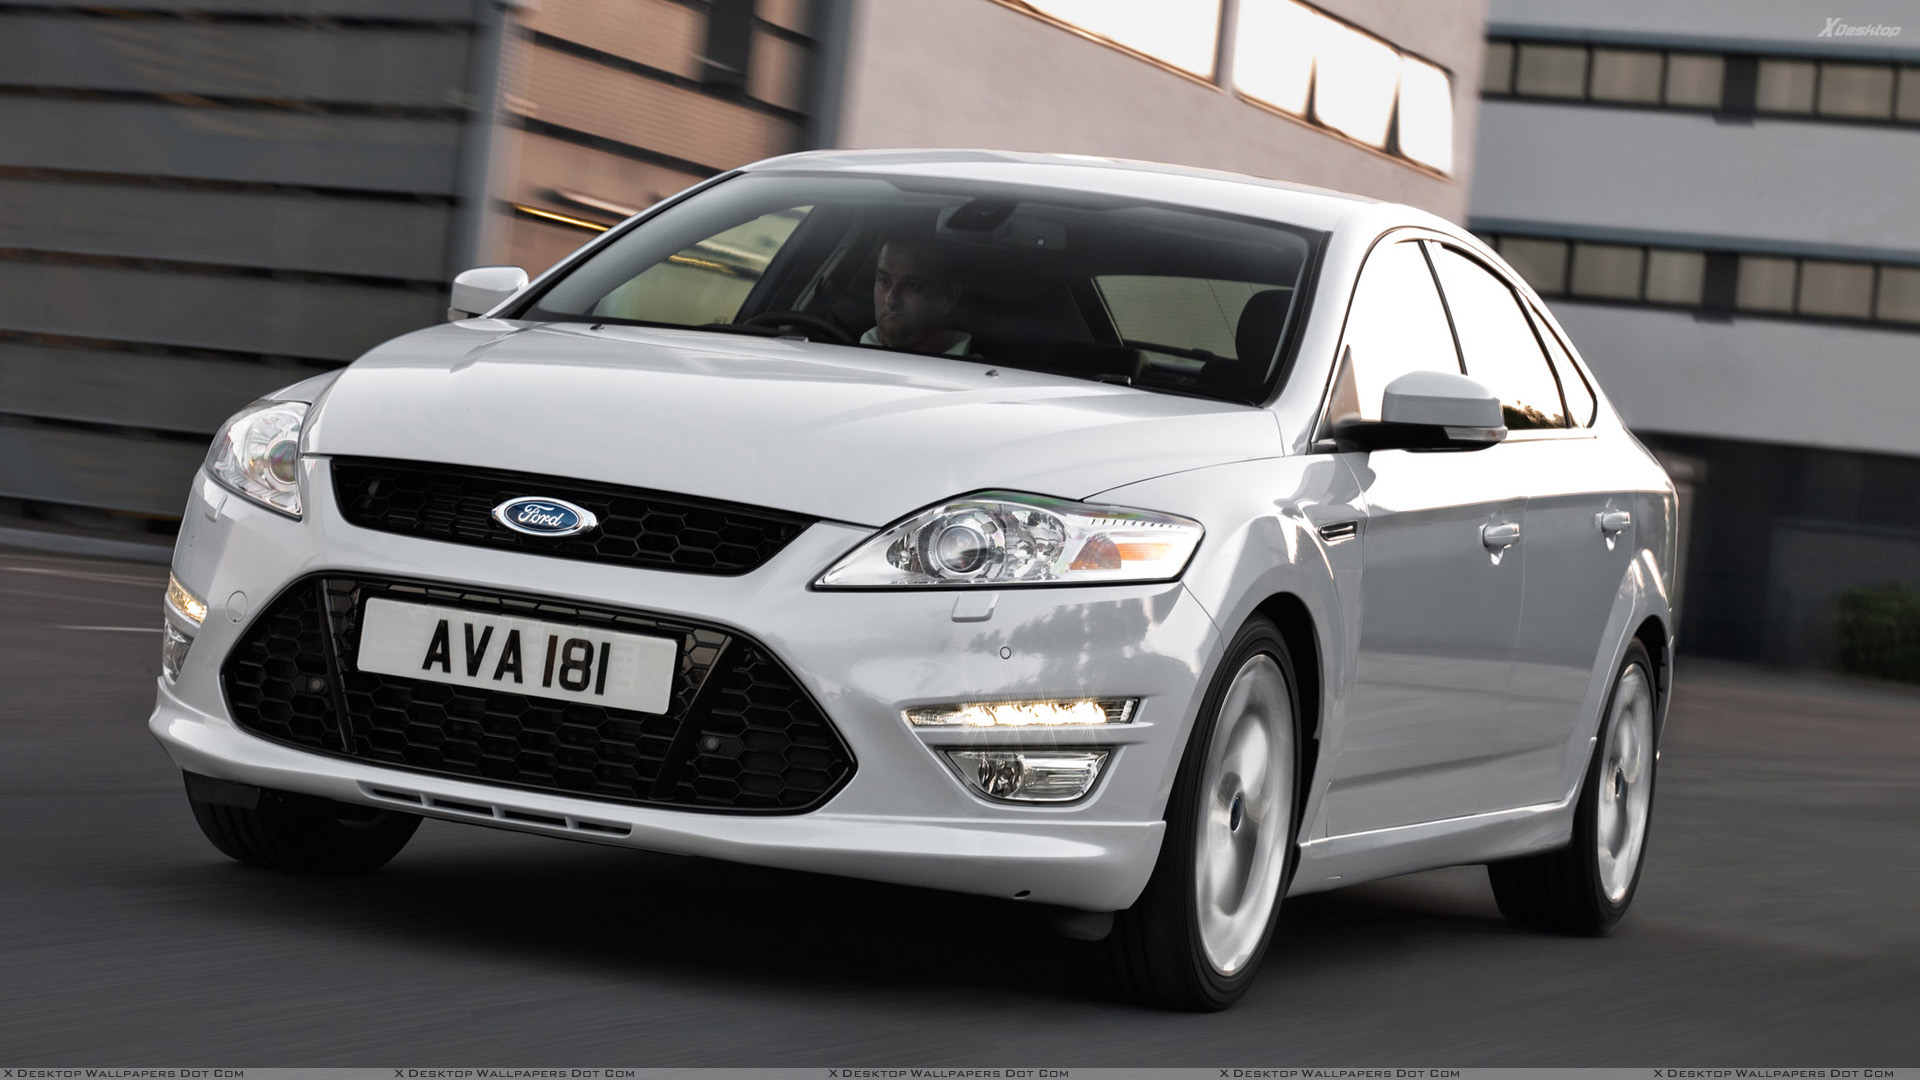 Ford Mondeo Wallpaper 20   1920 X 1080 stmednet 1920x1080